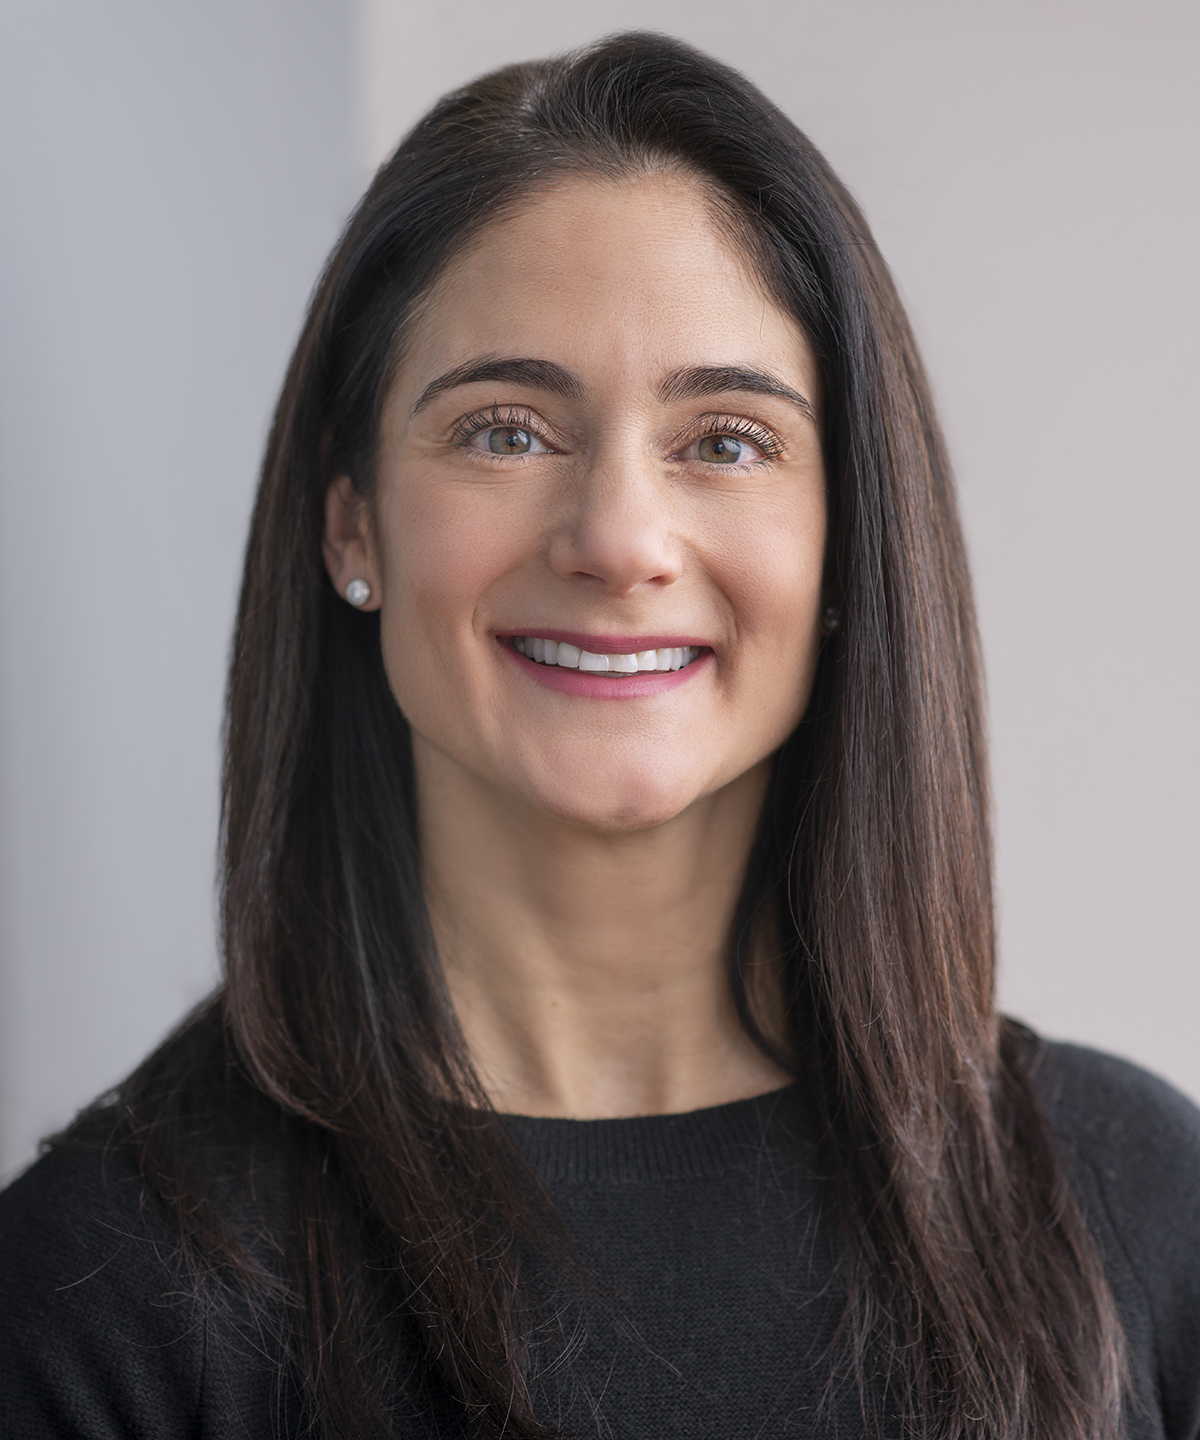 Lisa O'Donnell, PhD